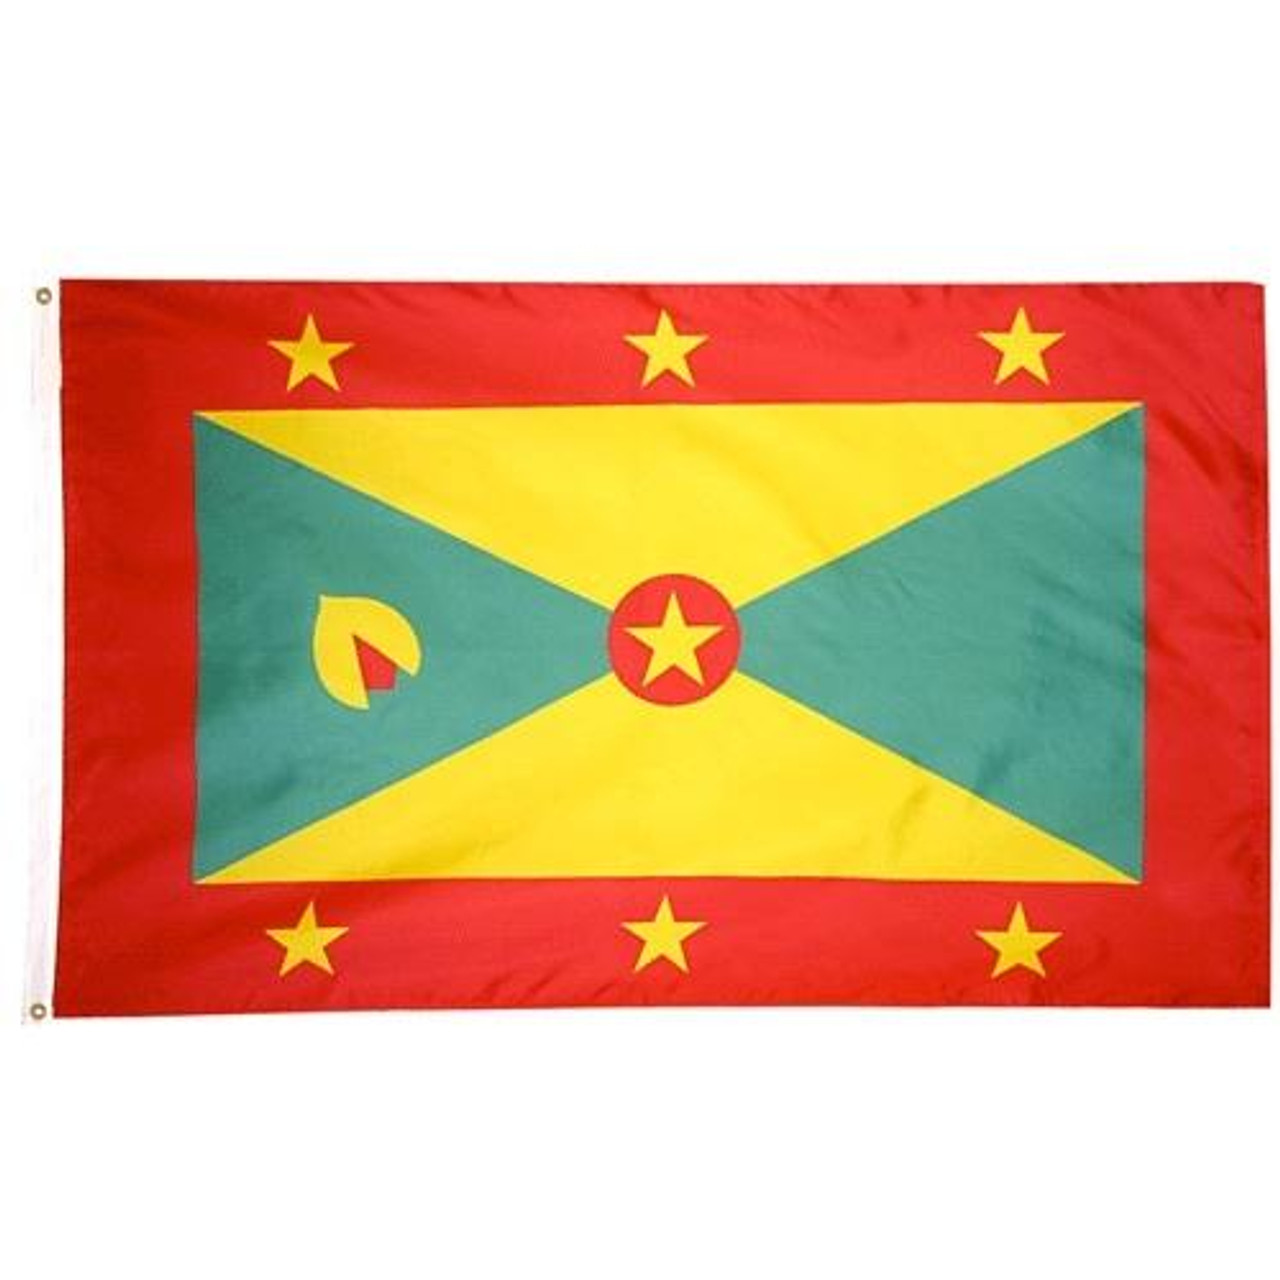 The Grenada flag consists red border with three yellow stars on top and bottom. Two yellow triangles on top and bottom, two green triangles on left and right inside border, and red circle with yellow star at center.